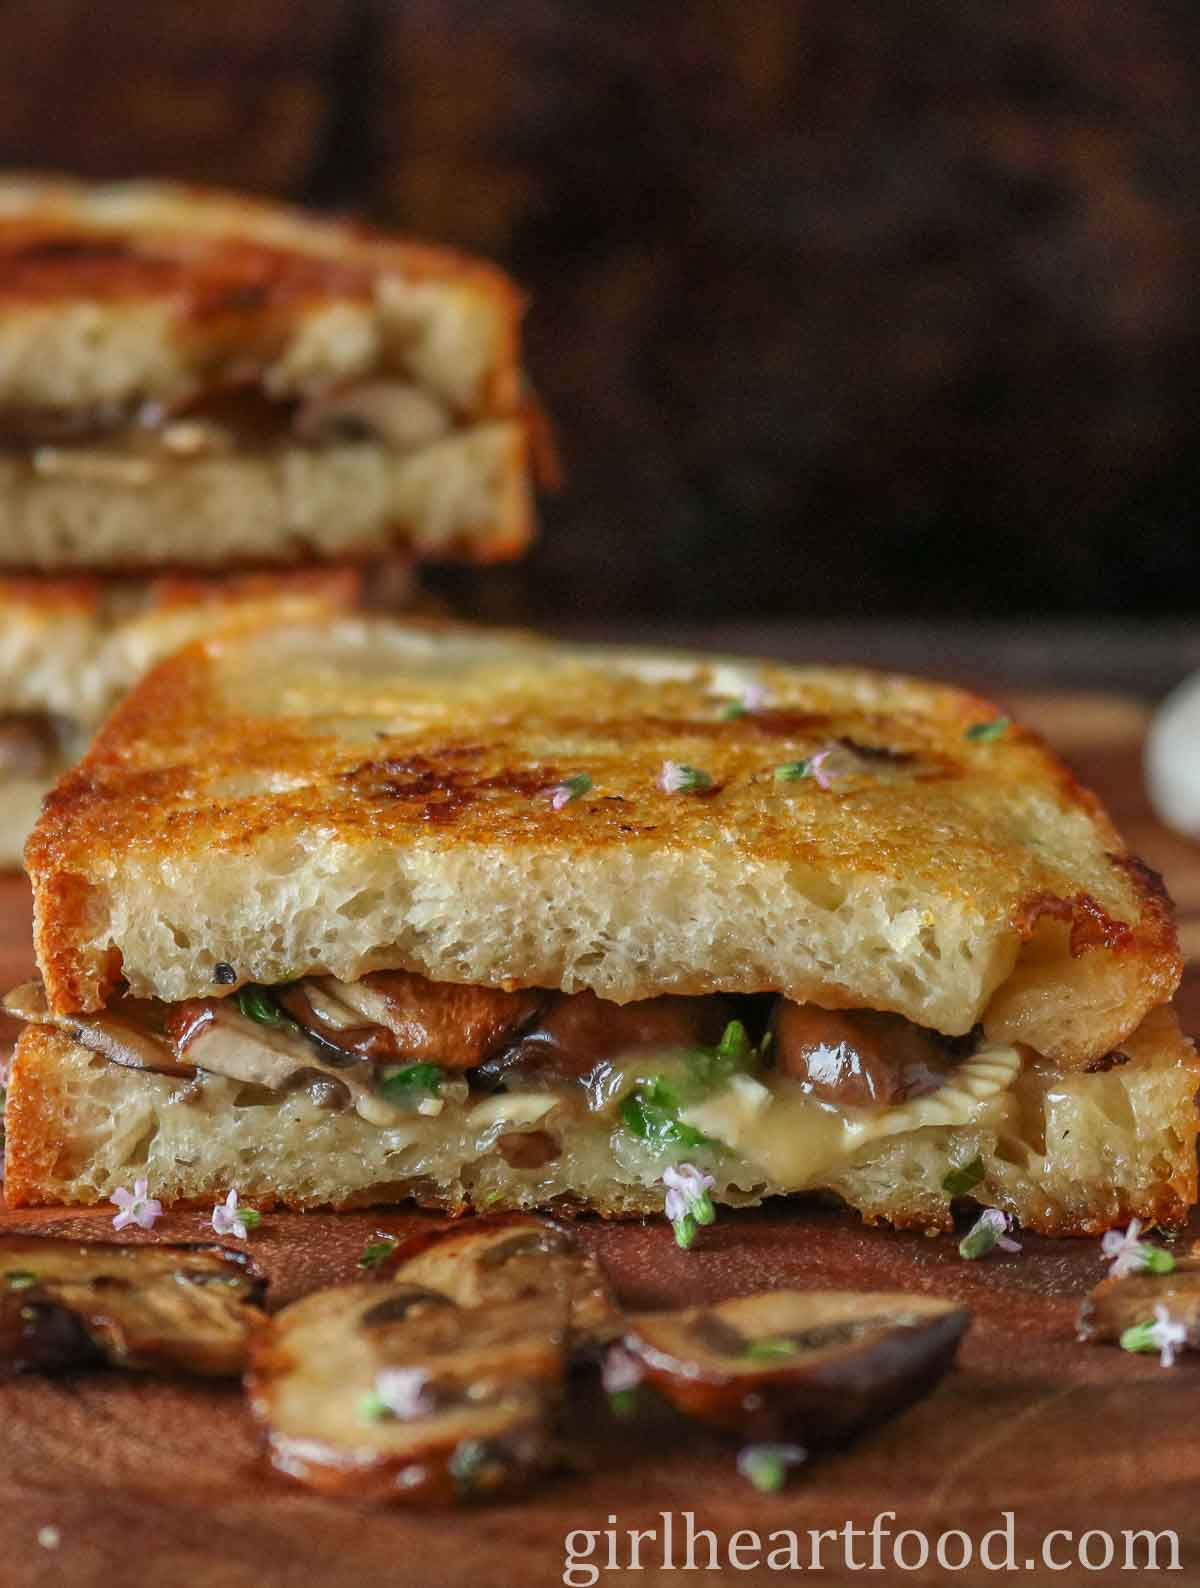 Half of a mushroom and brie grilled cheese sandwich.